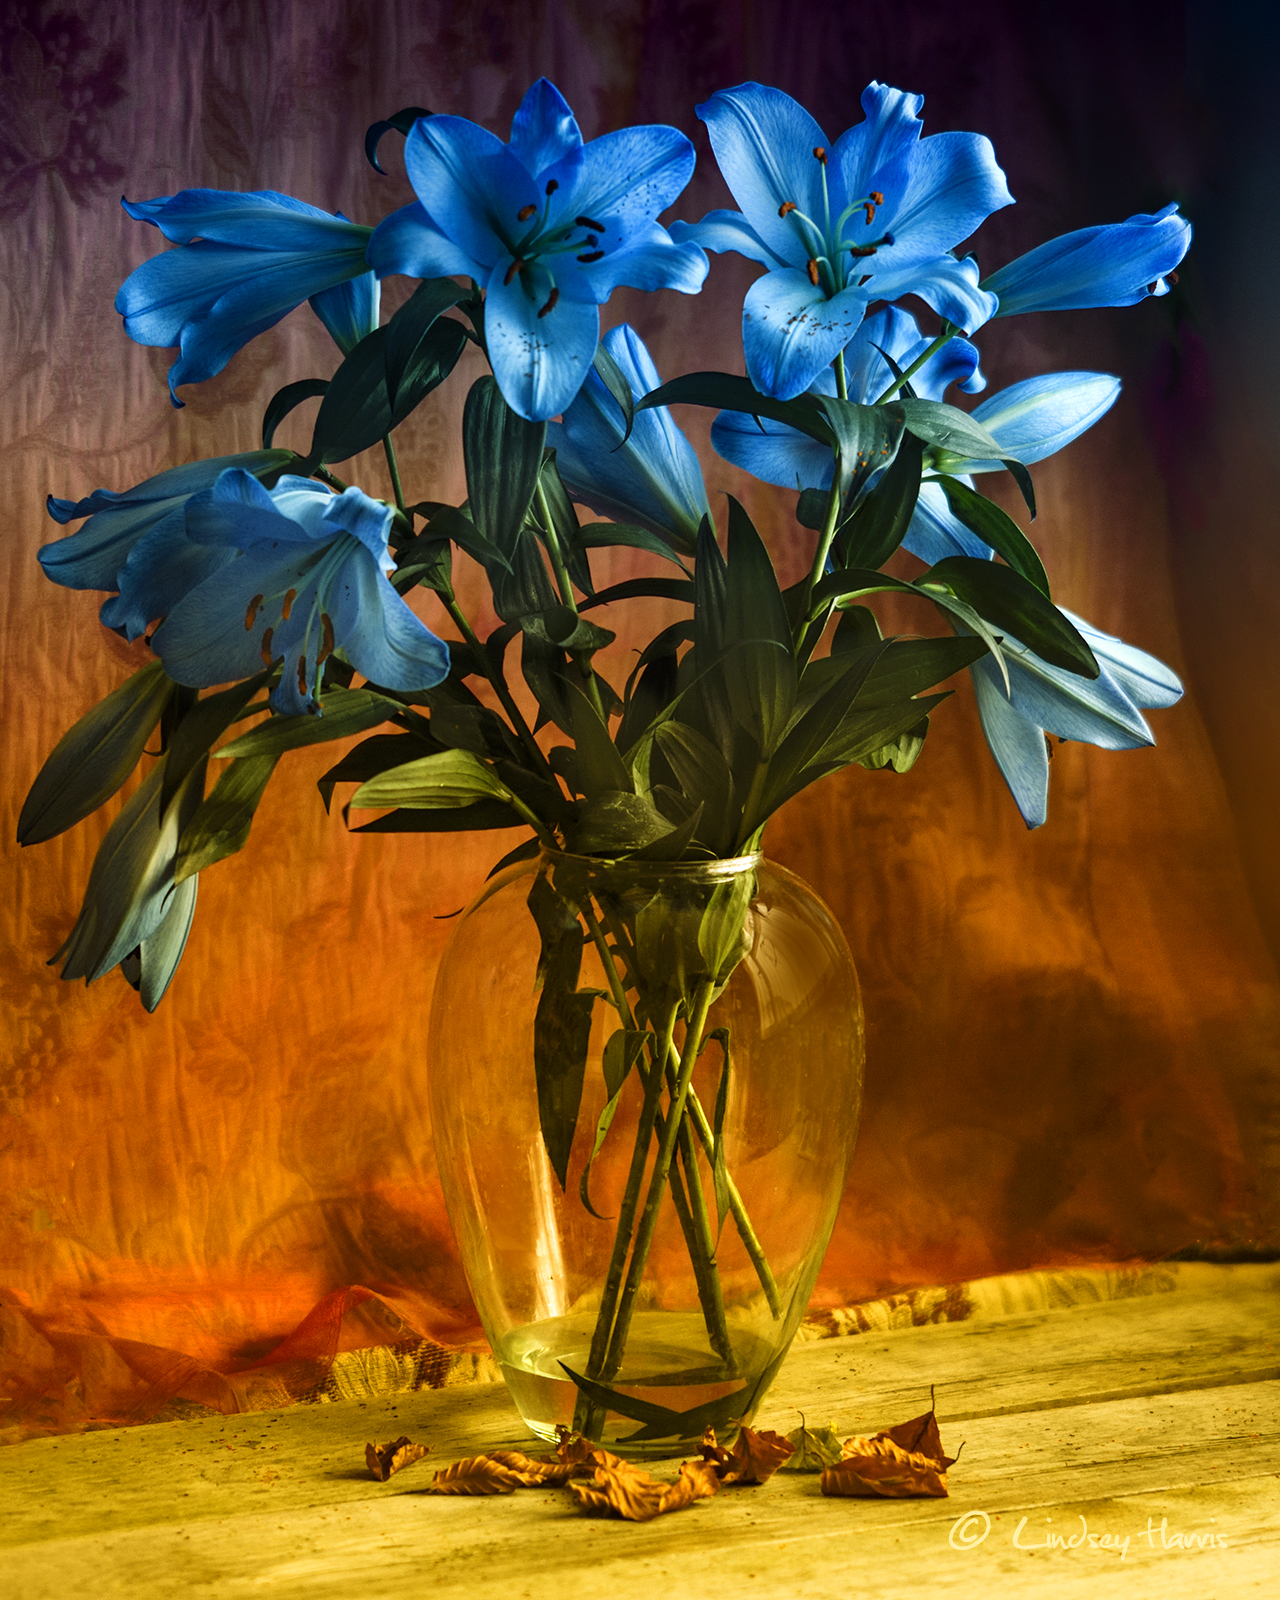 ⇡ Dufy style still life photograph - vase of flowers